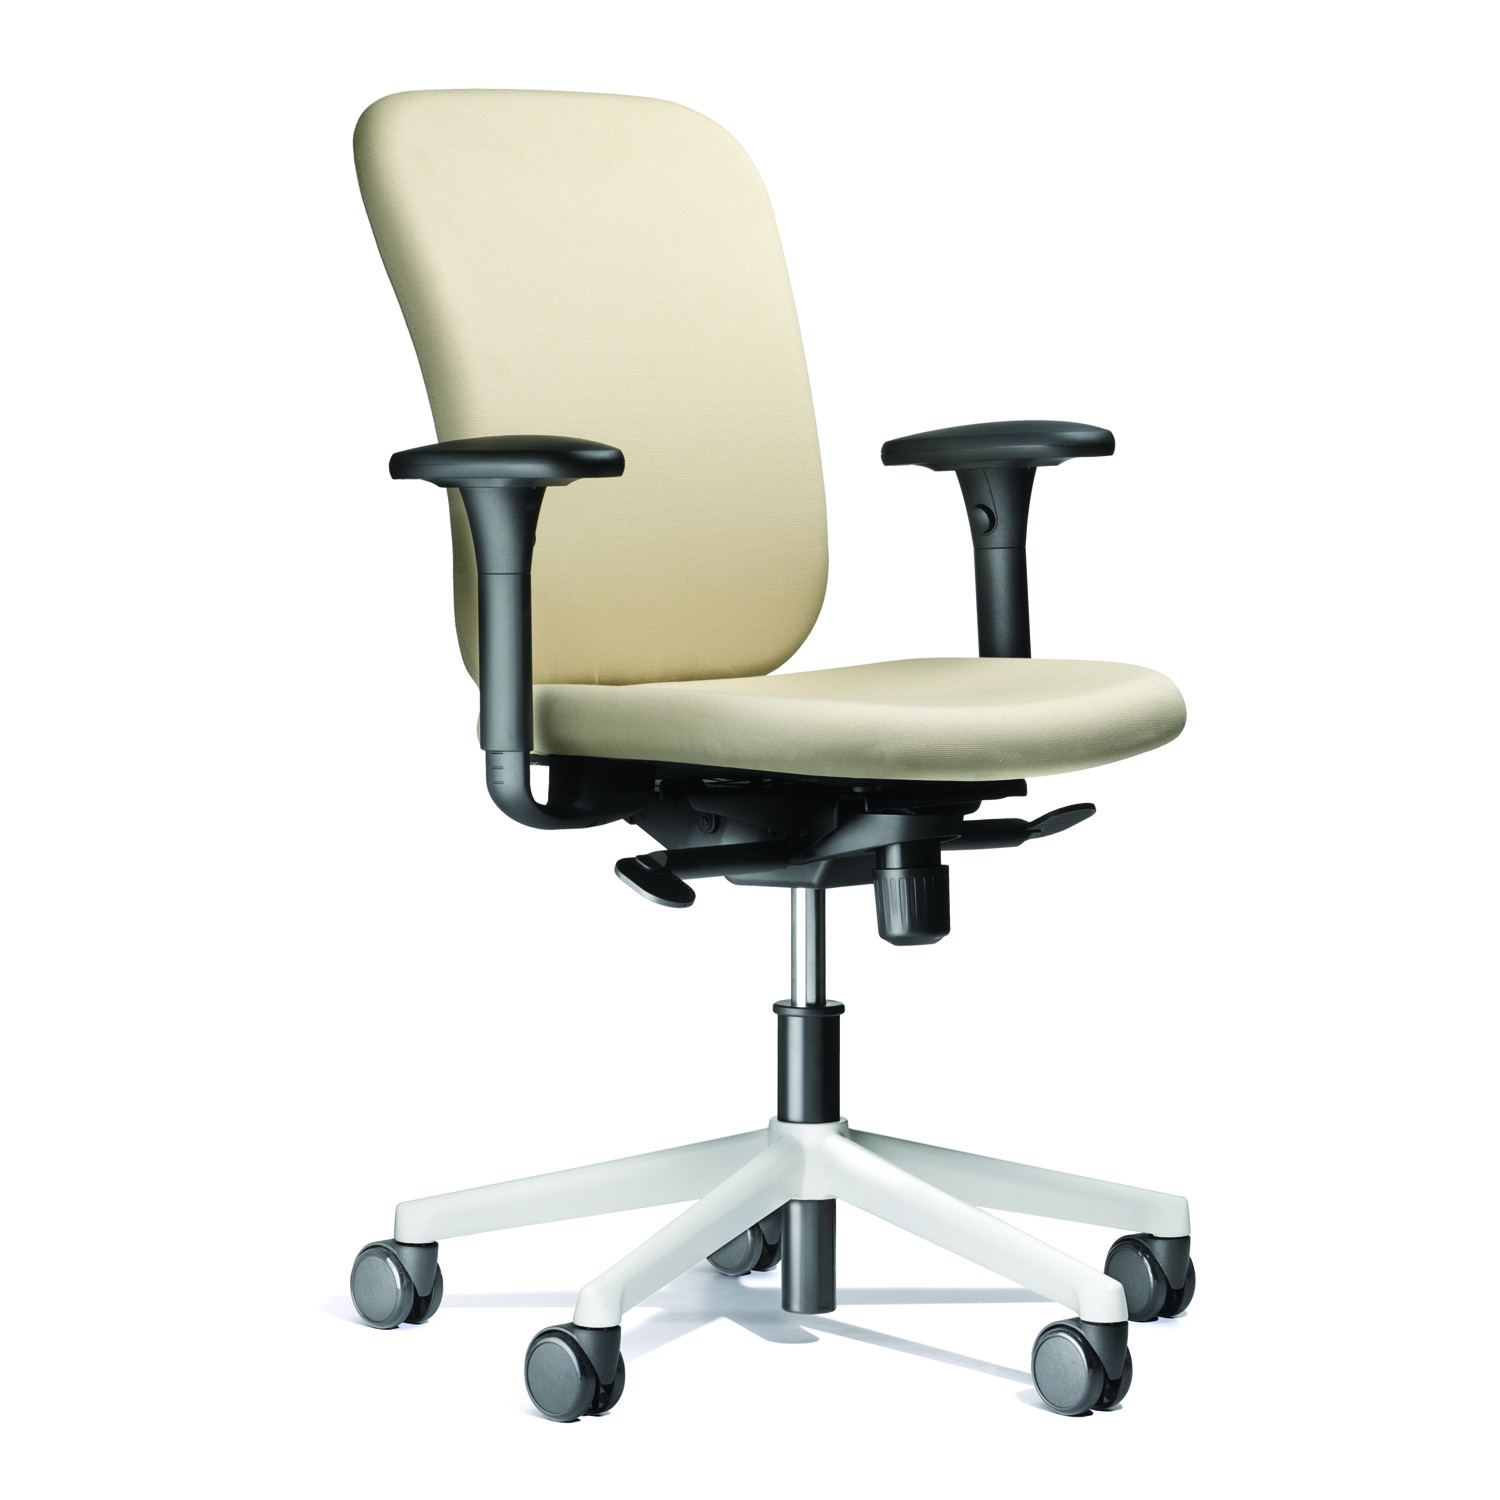 Ahrend 160 Swivel Chairs